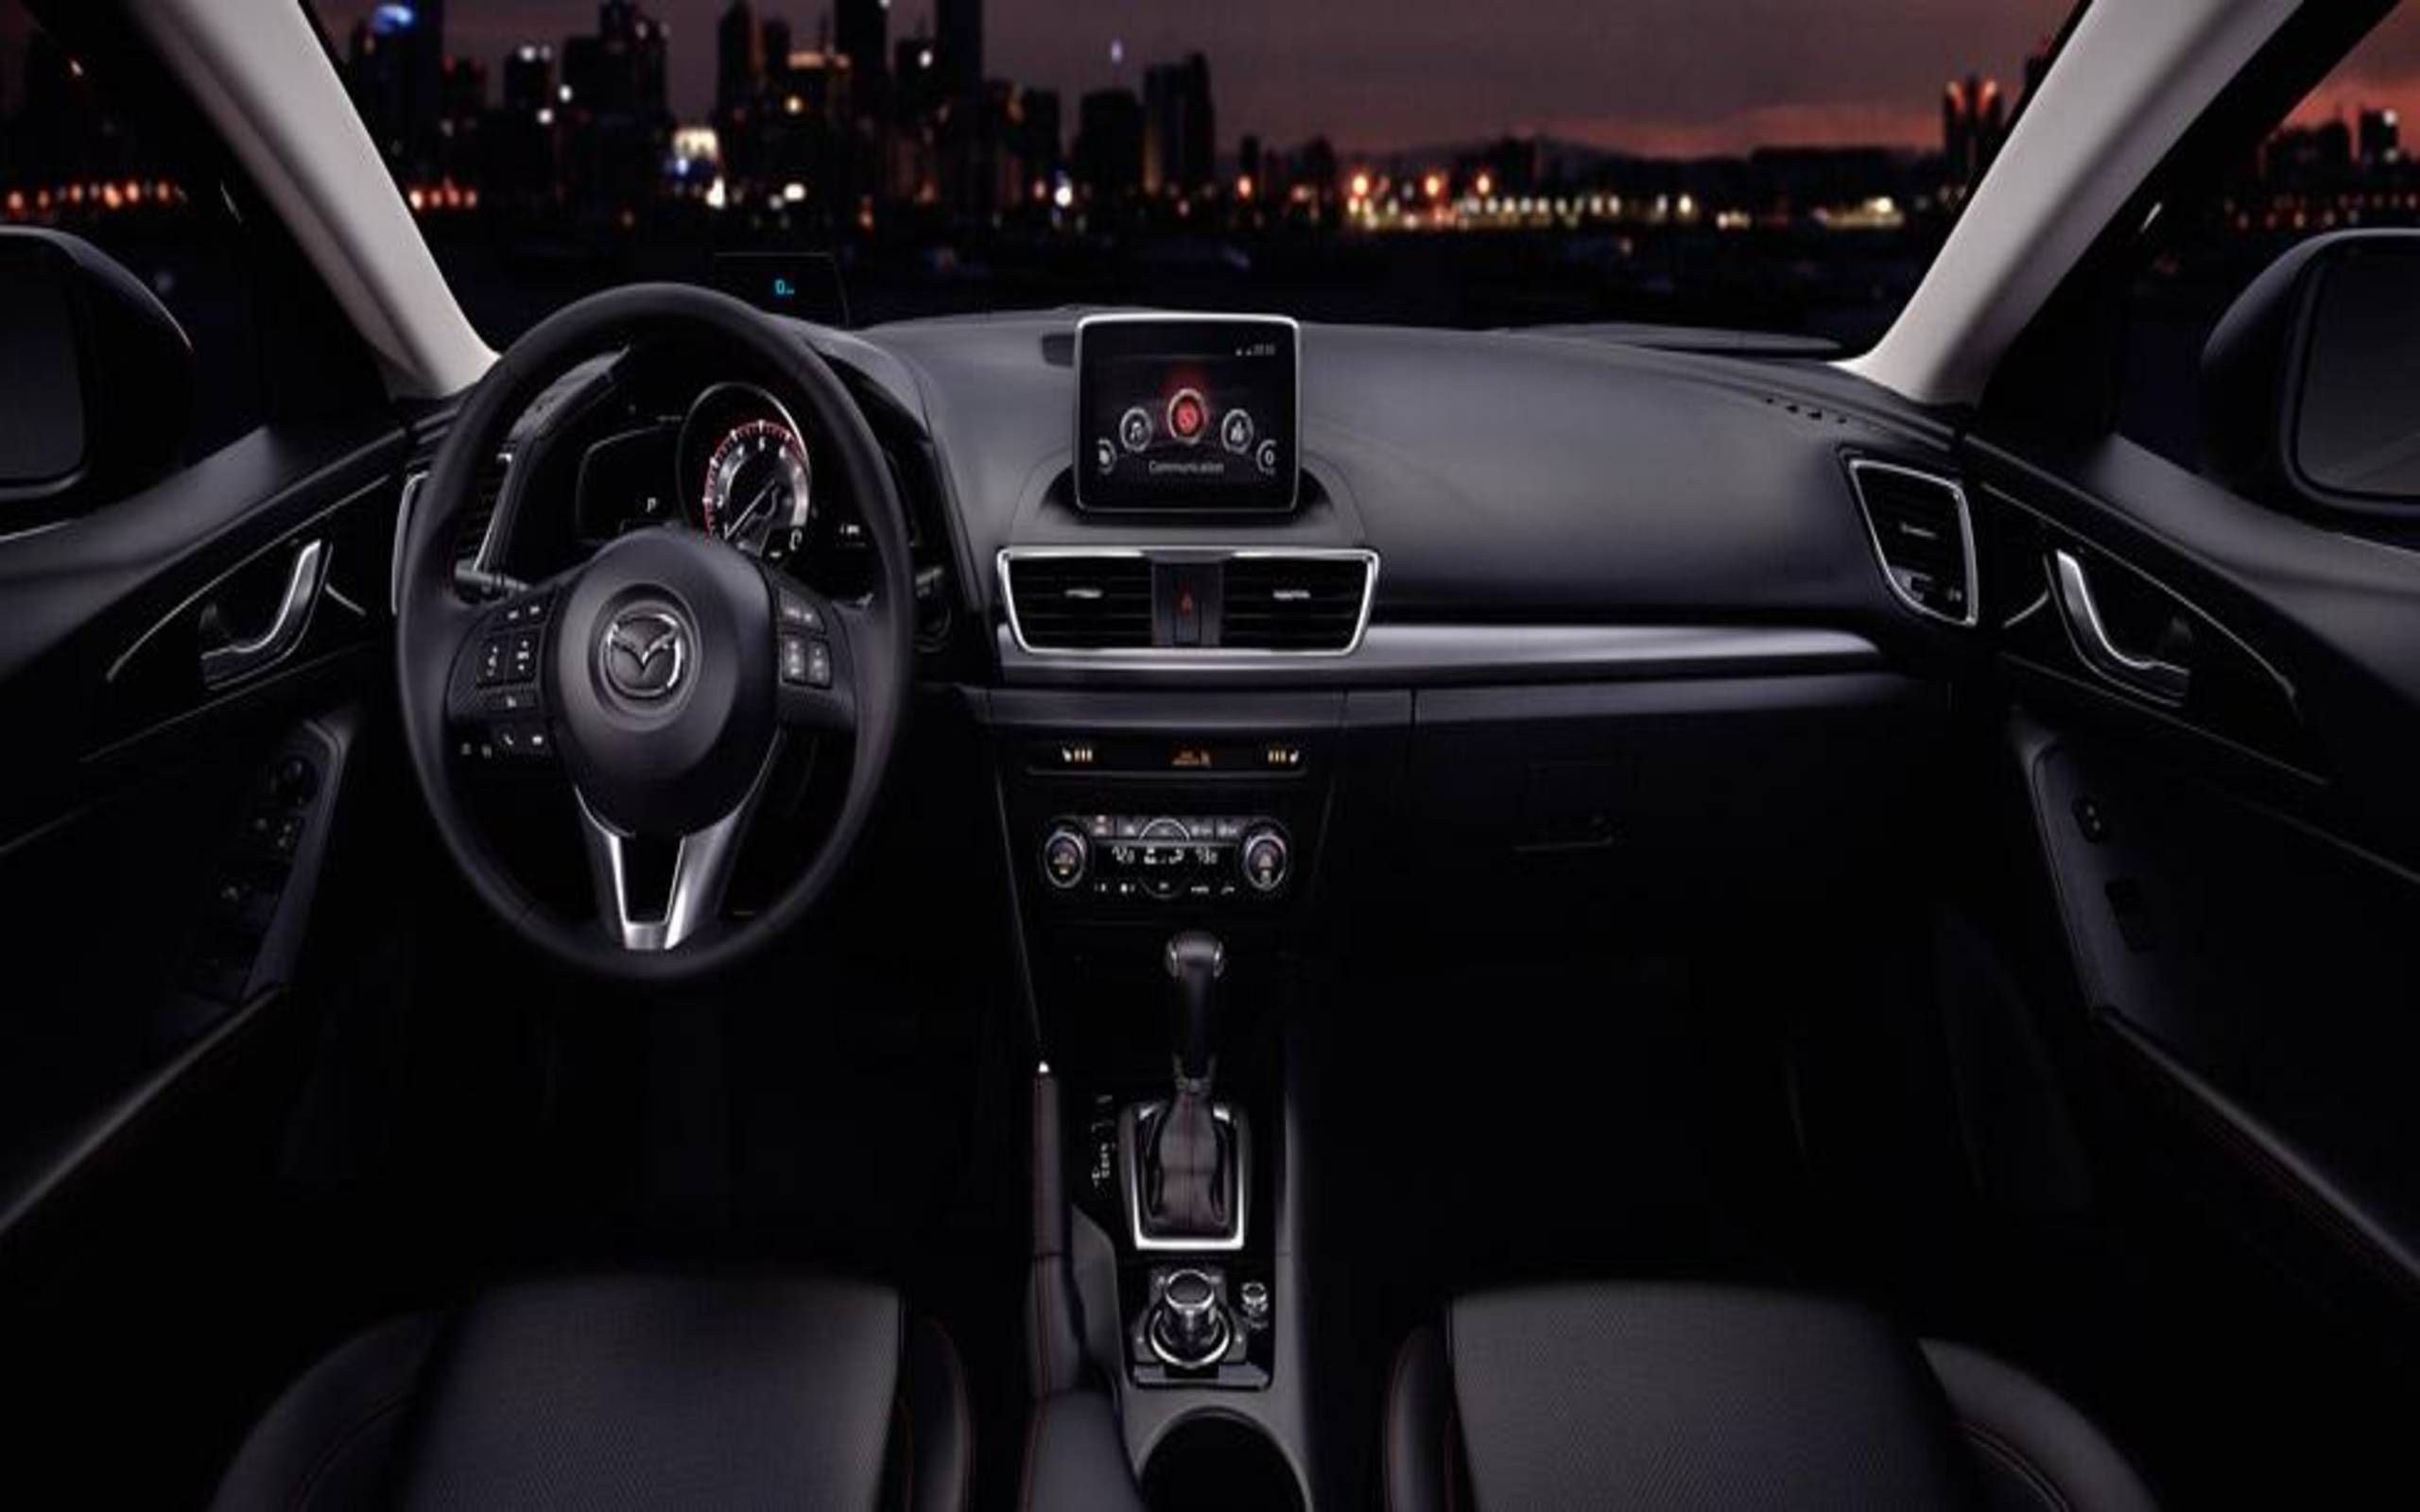 2014 Mazda 3 S Grand Touring 5 Door Review Notes